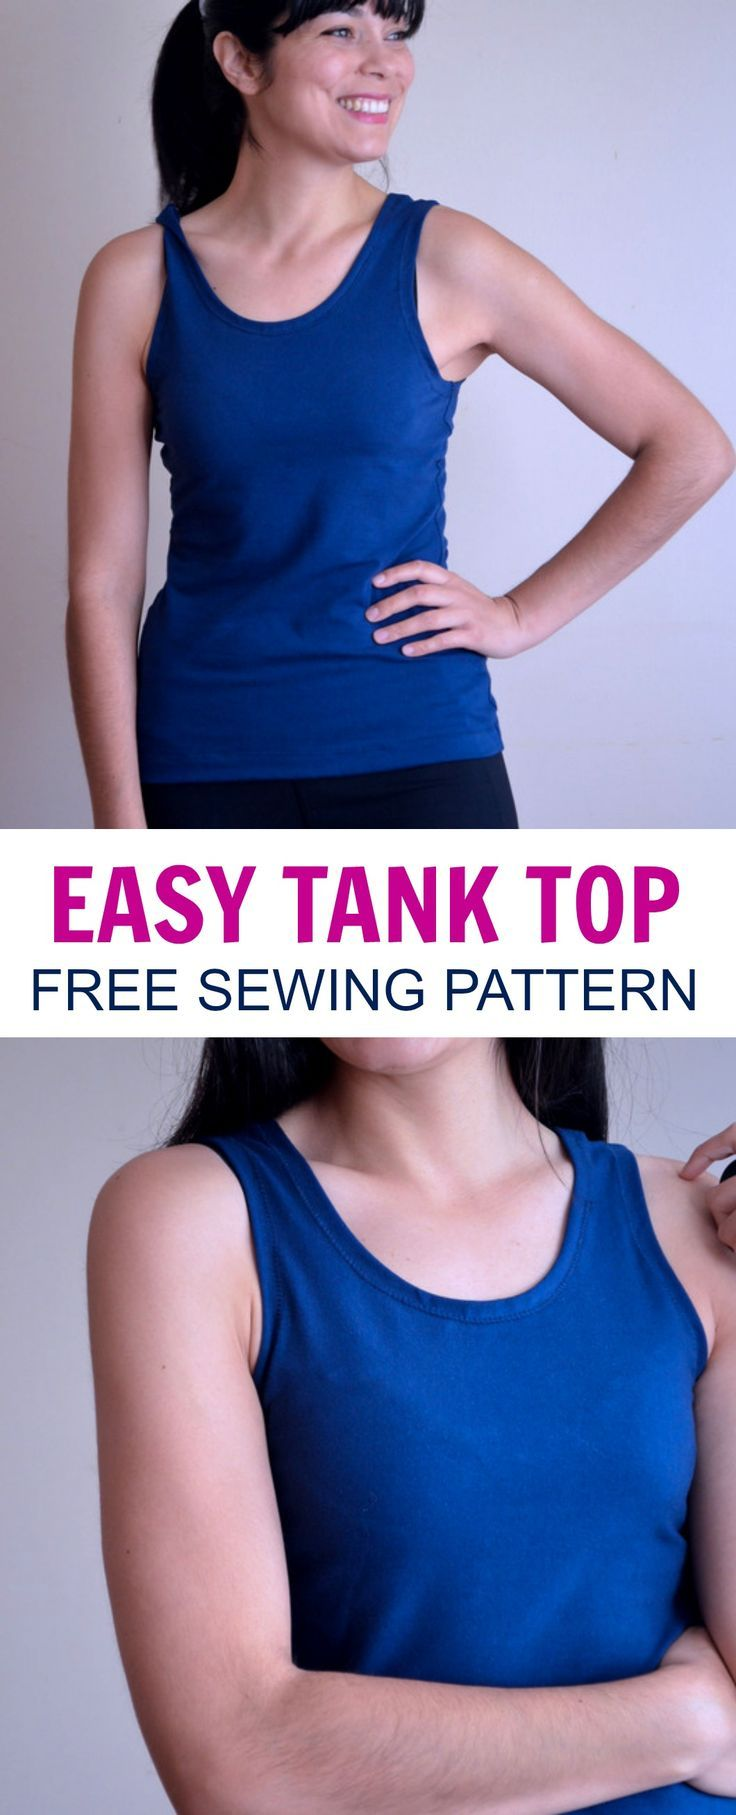 Free DIY Tank top Free Sewing pattern: Get access to this free printable sewing pattern for women. Ideal for beginners. Get your PDF pattern today!